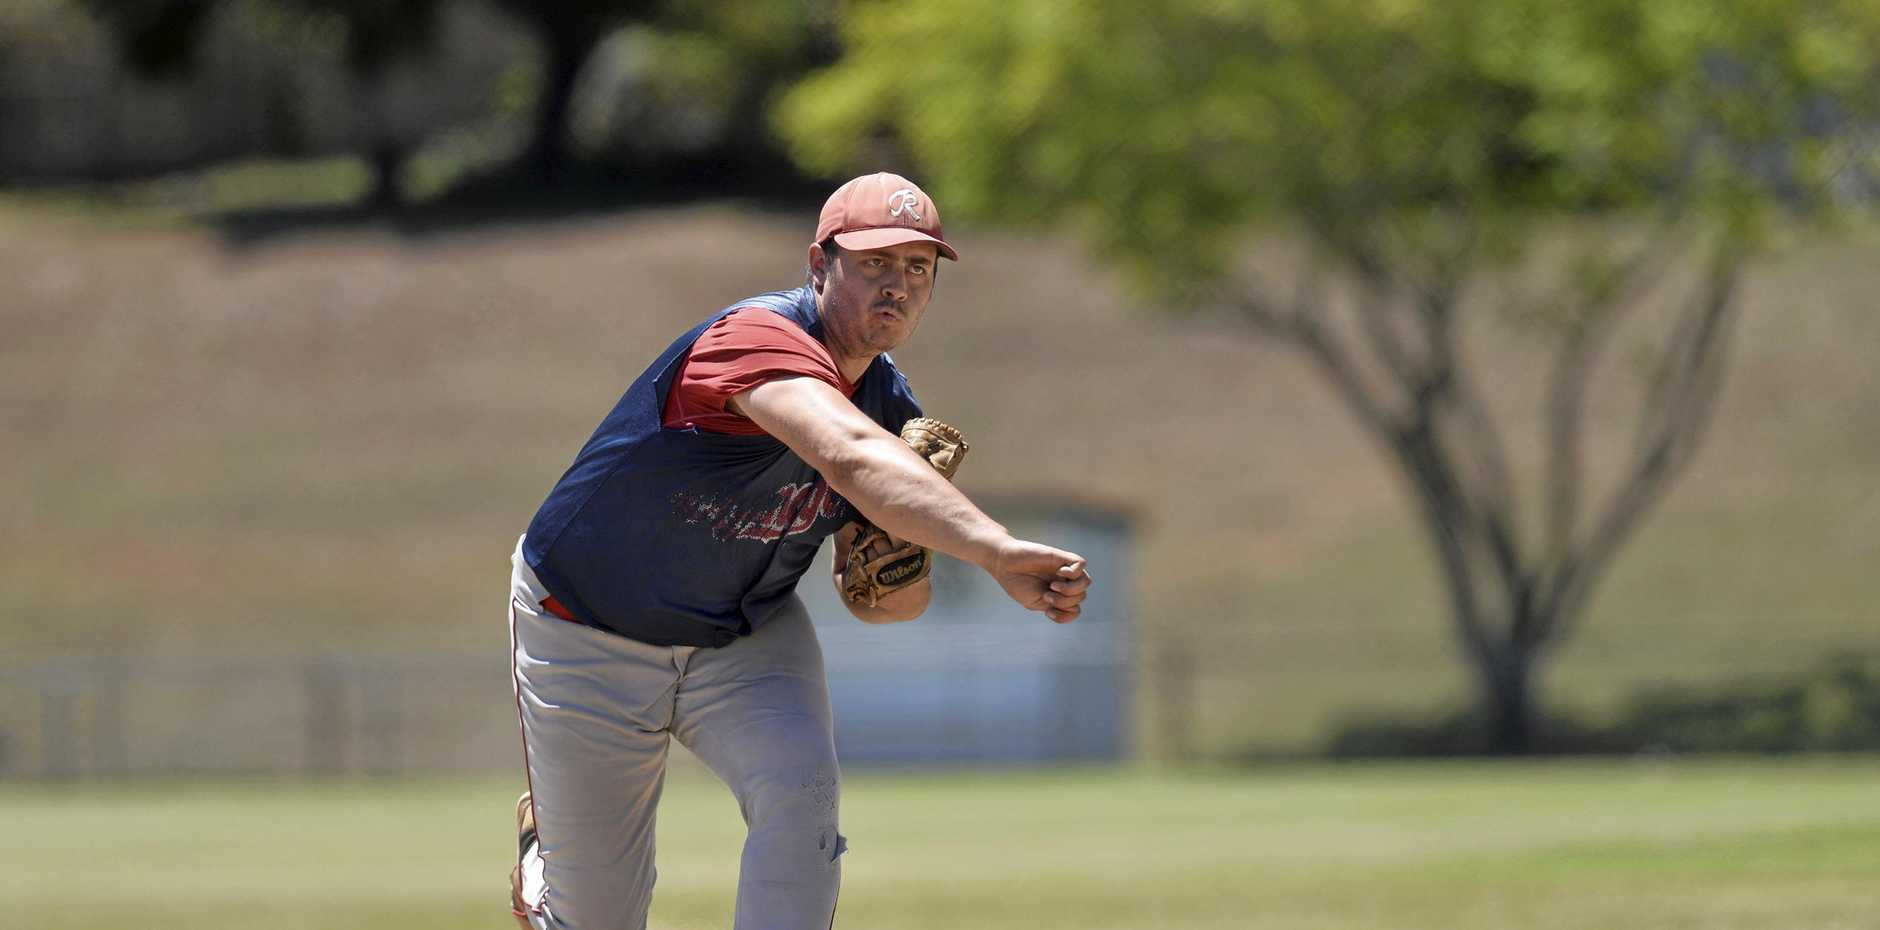 Toowoomba Rangers' pitcher Sam McNeice will be looking to help keep his team's season alive tomorrow when he takes to the mound against Wests Bulldogs in the GBL Division Three knock-out semi-final.